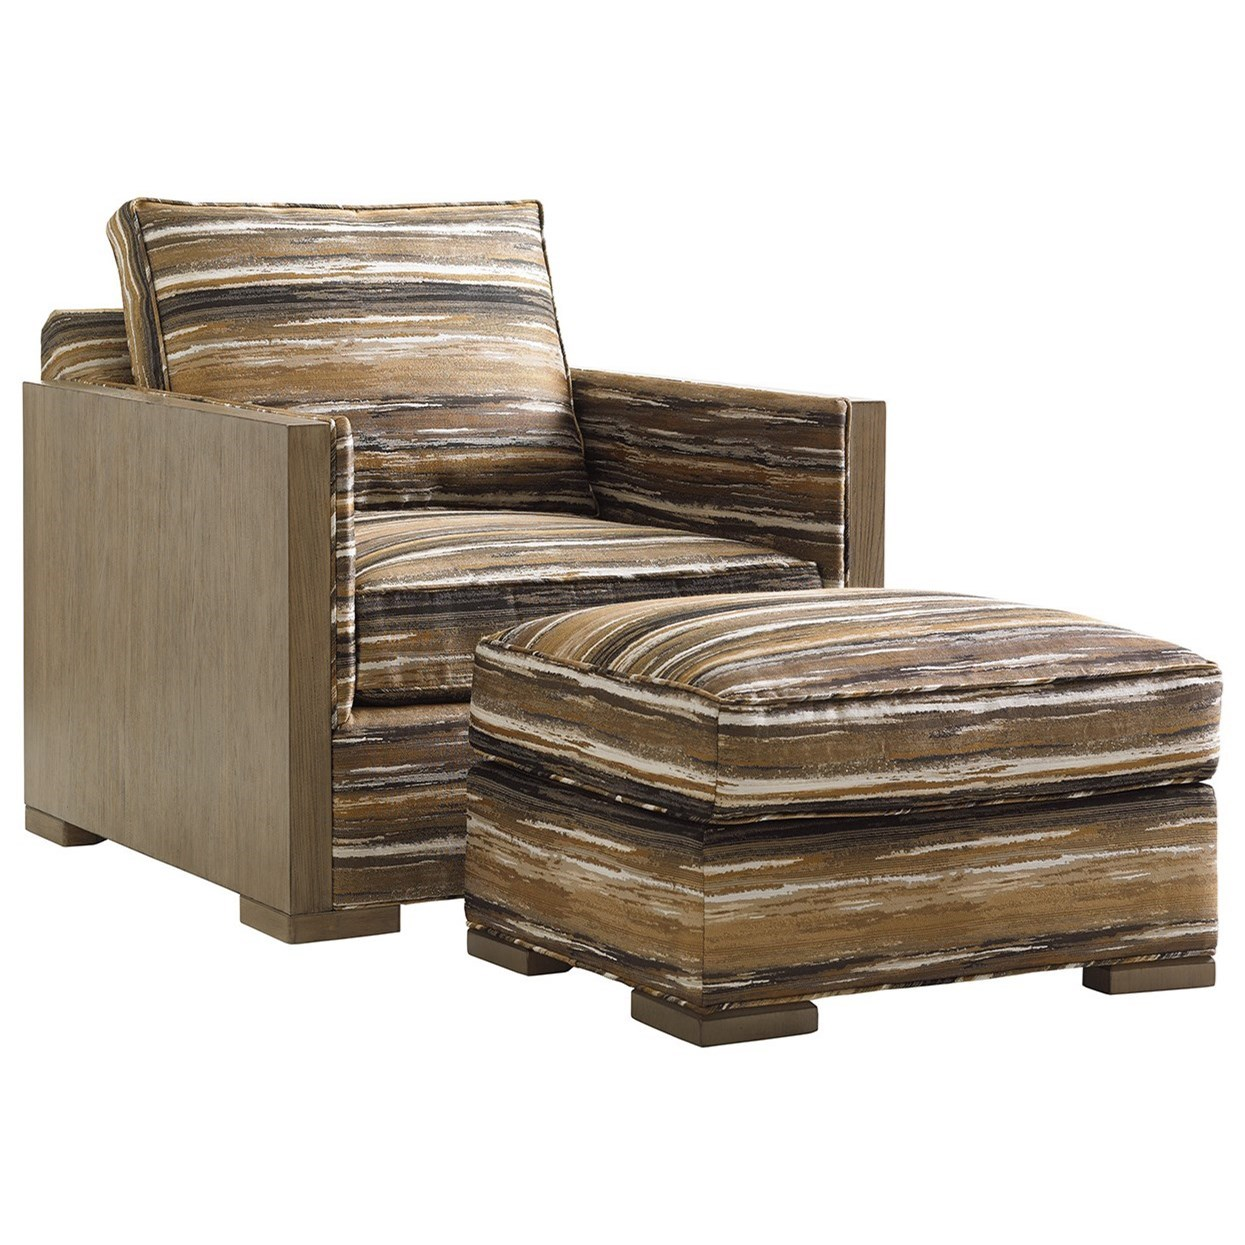 Shadow Play Delshire Chair and Ottoman Set by Lexington at Johnny Janosik